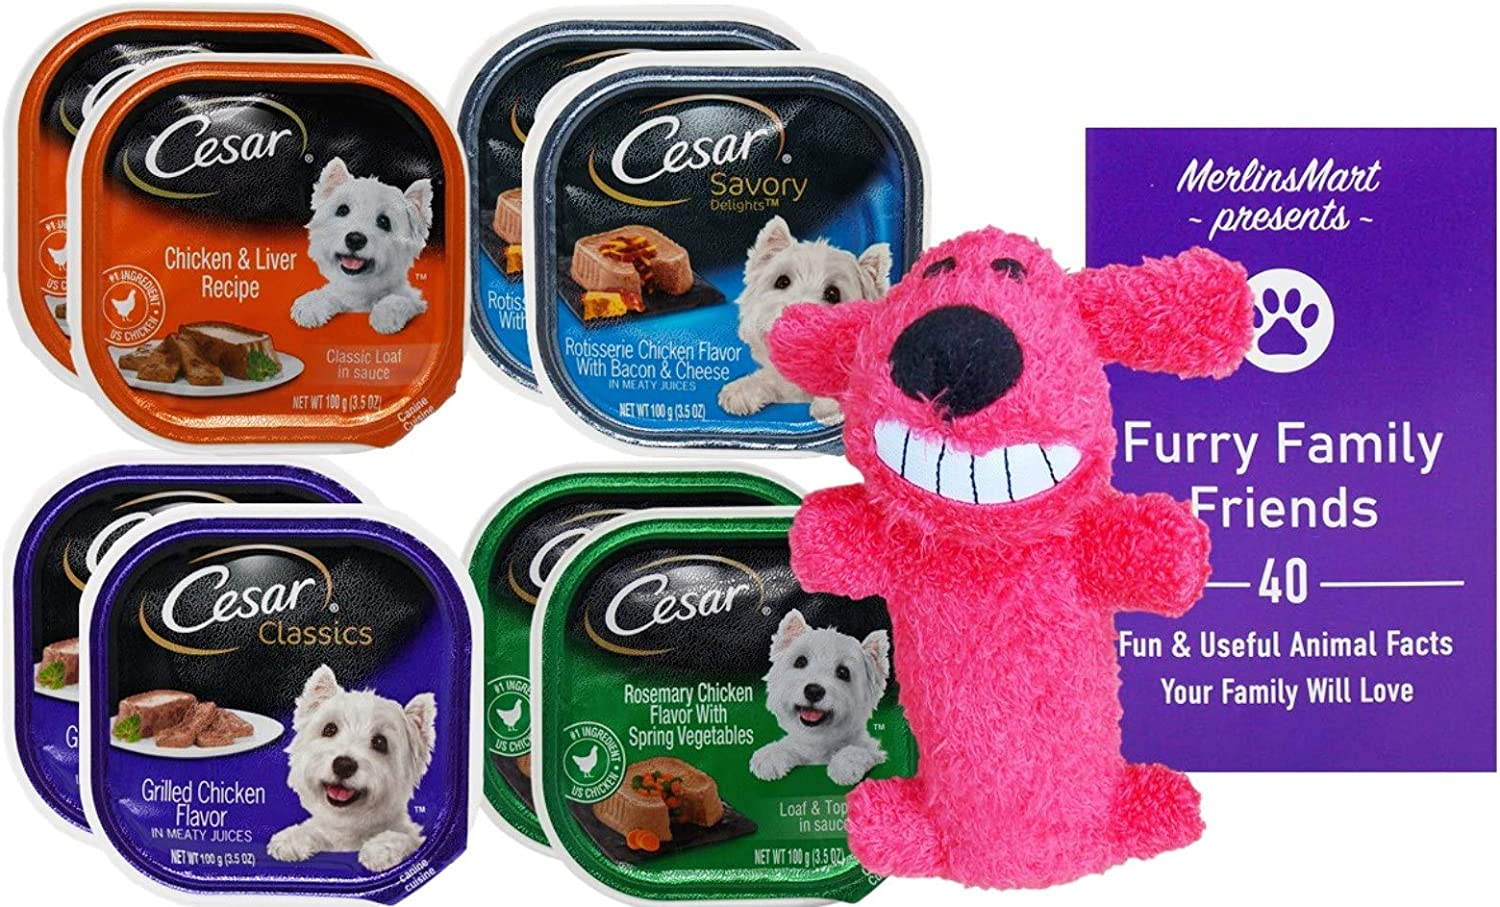 Cesar Dog Food 4 Flavor 8 Can Variety (2) Each: Chicken Liver, Rotisserie Chicken Bacon Cheese, Grilled Chicken, Rosemary Chicken Vegetable (3.5 Ounces) - Plus Squeak Toy and Fun Facts Booklet Bundle